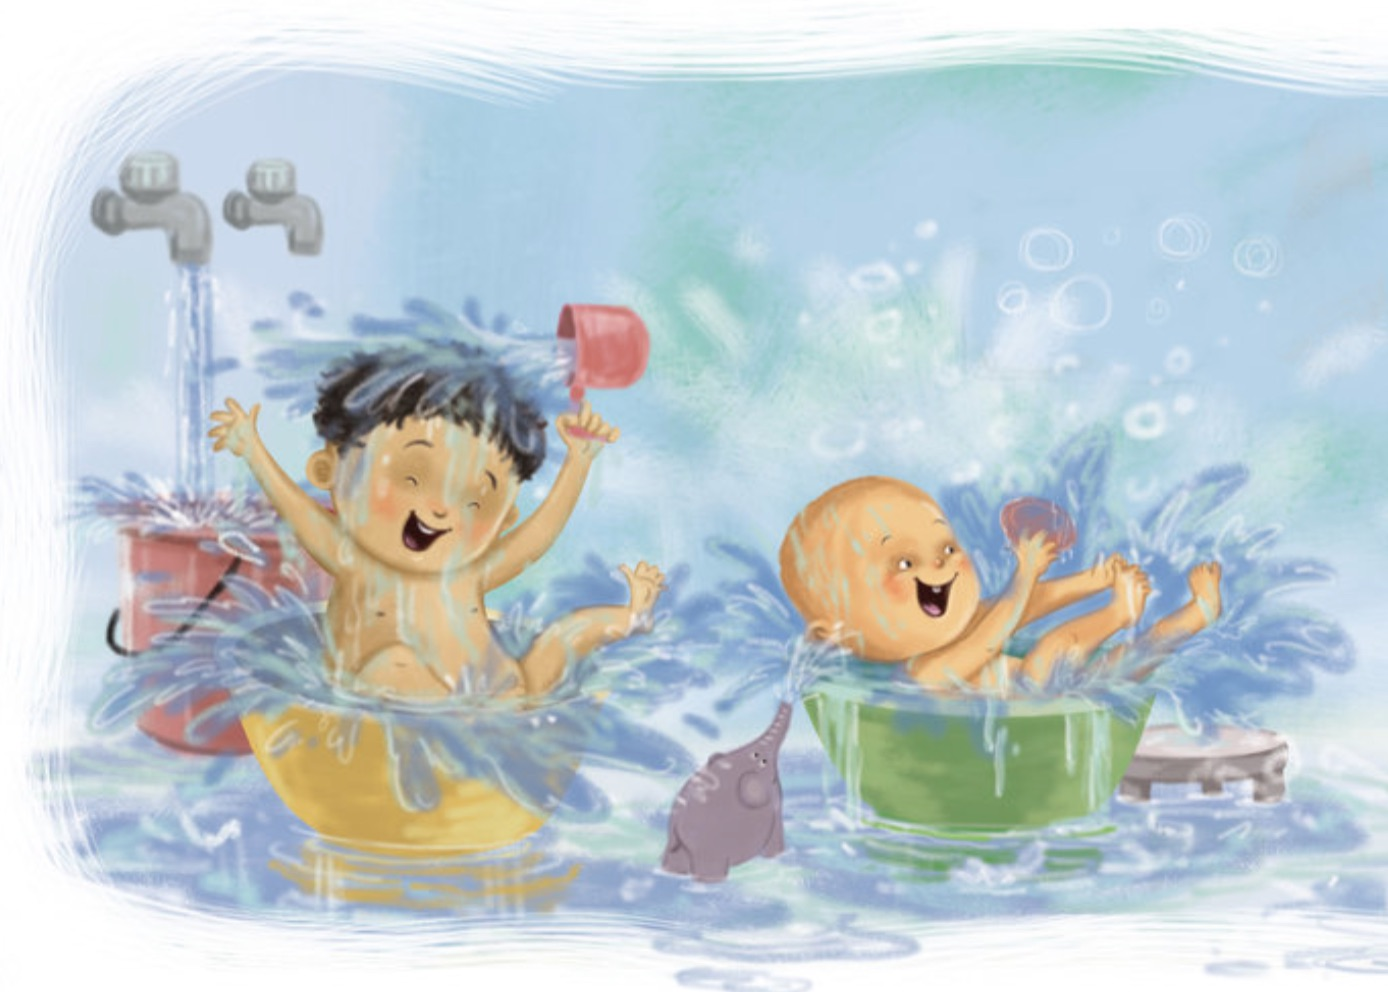 Bathtime for Chunnu and Munnu – bedtime fun for early readers